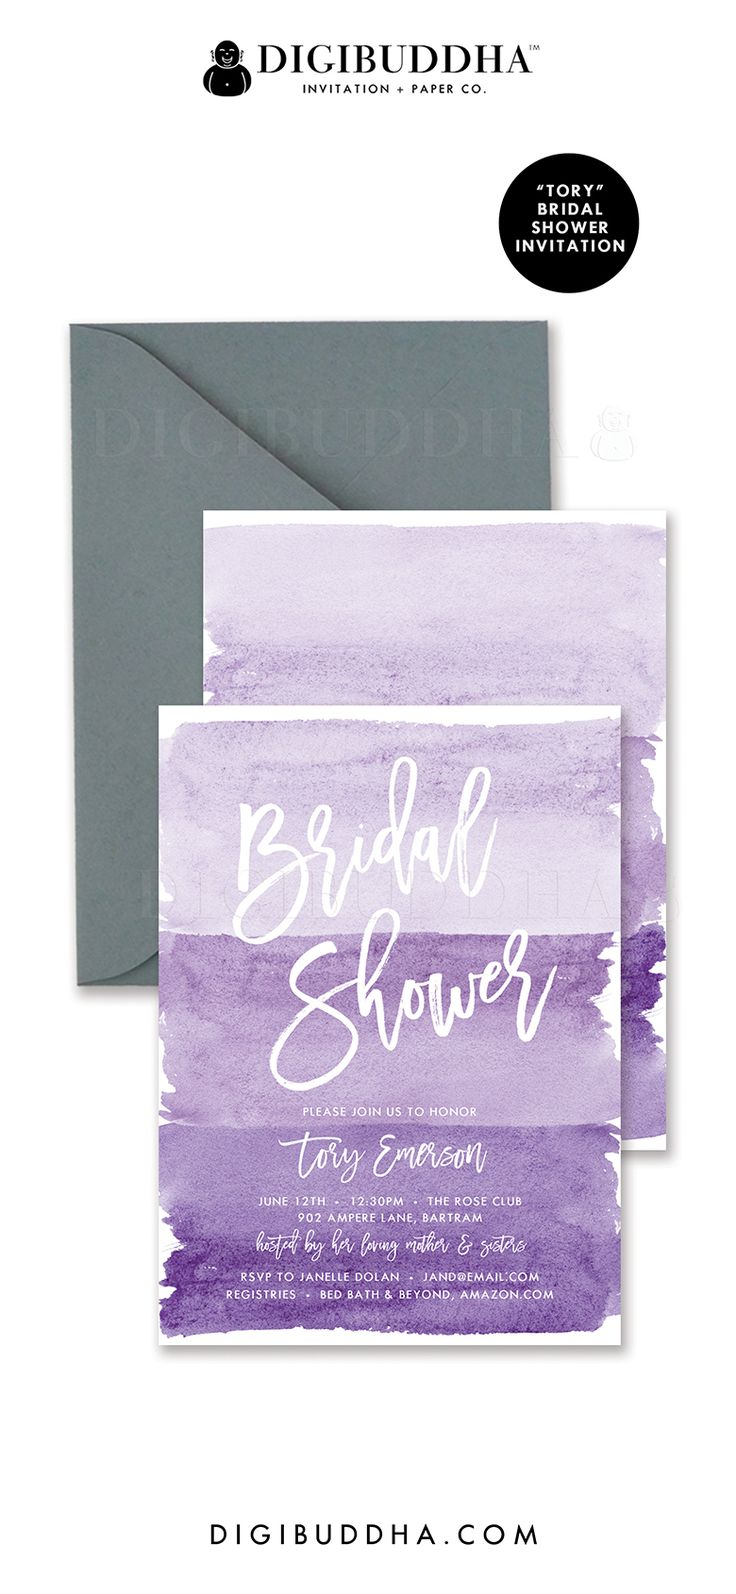 """Purple bridal shower invitations in ombre shades of soft pastel lilac, lavender, grape purple and deeper violet. """"Tory"""" style, watercolor details with hand lettered script typography. Coordinating envelope liners and smoke gray envelopes also available. Celebrate live, love, and babies with Digibuddha Invitation + Paper Co."""